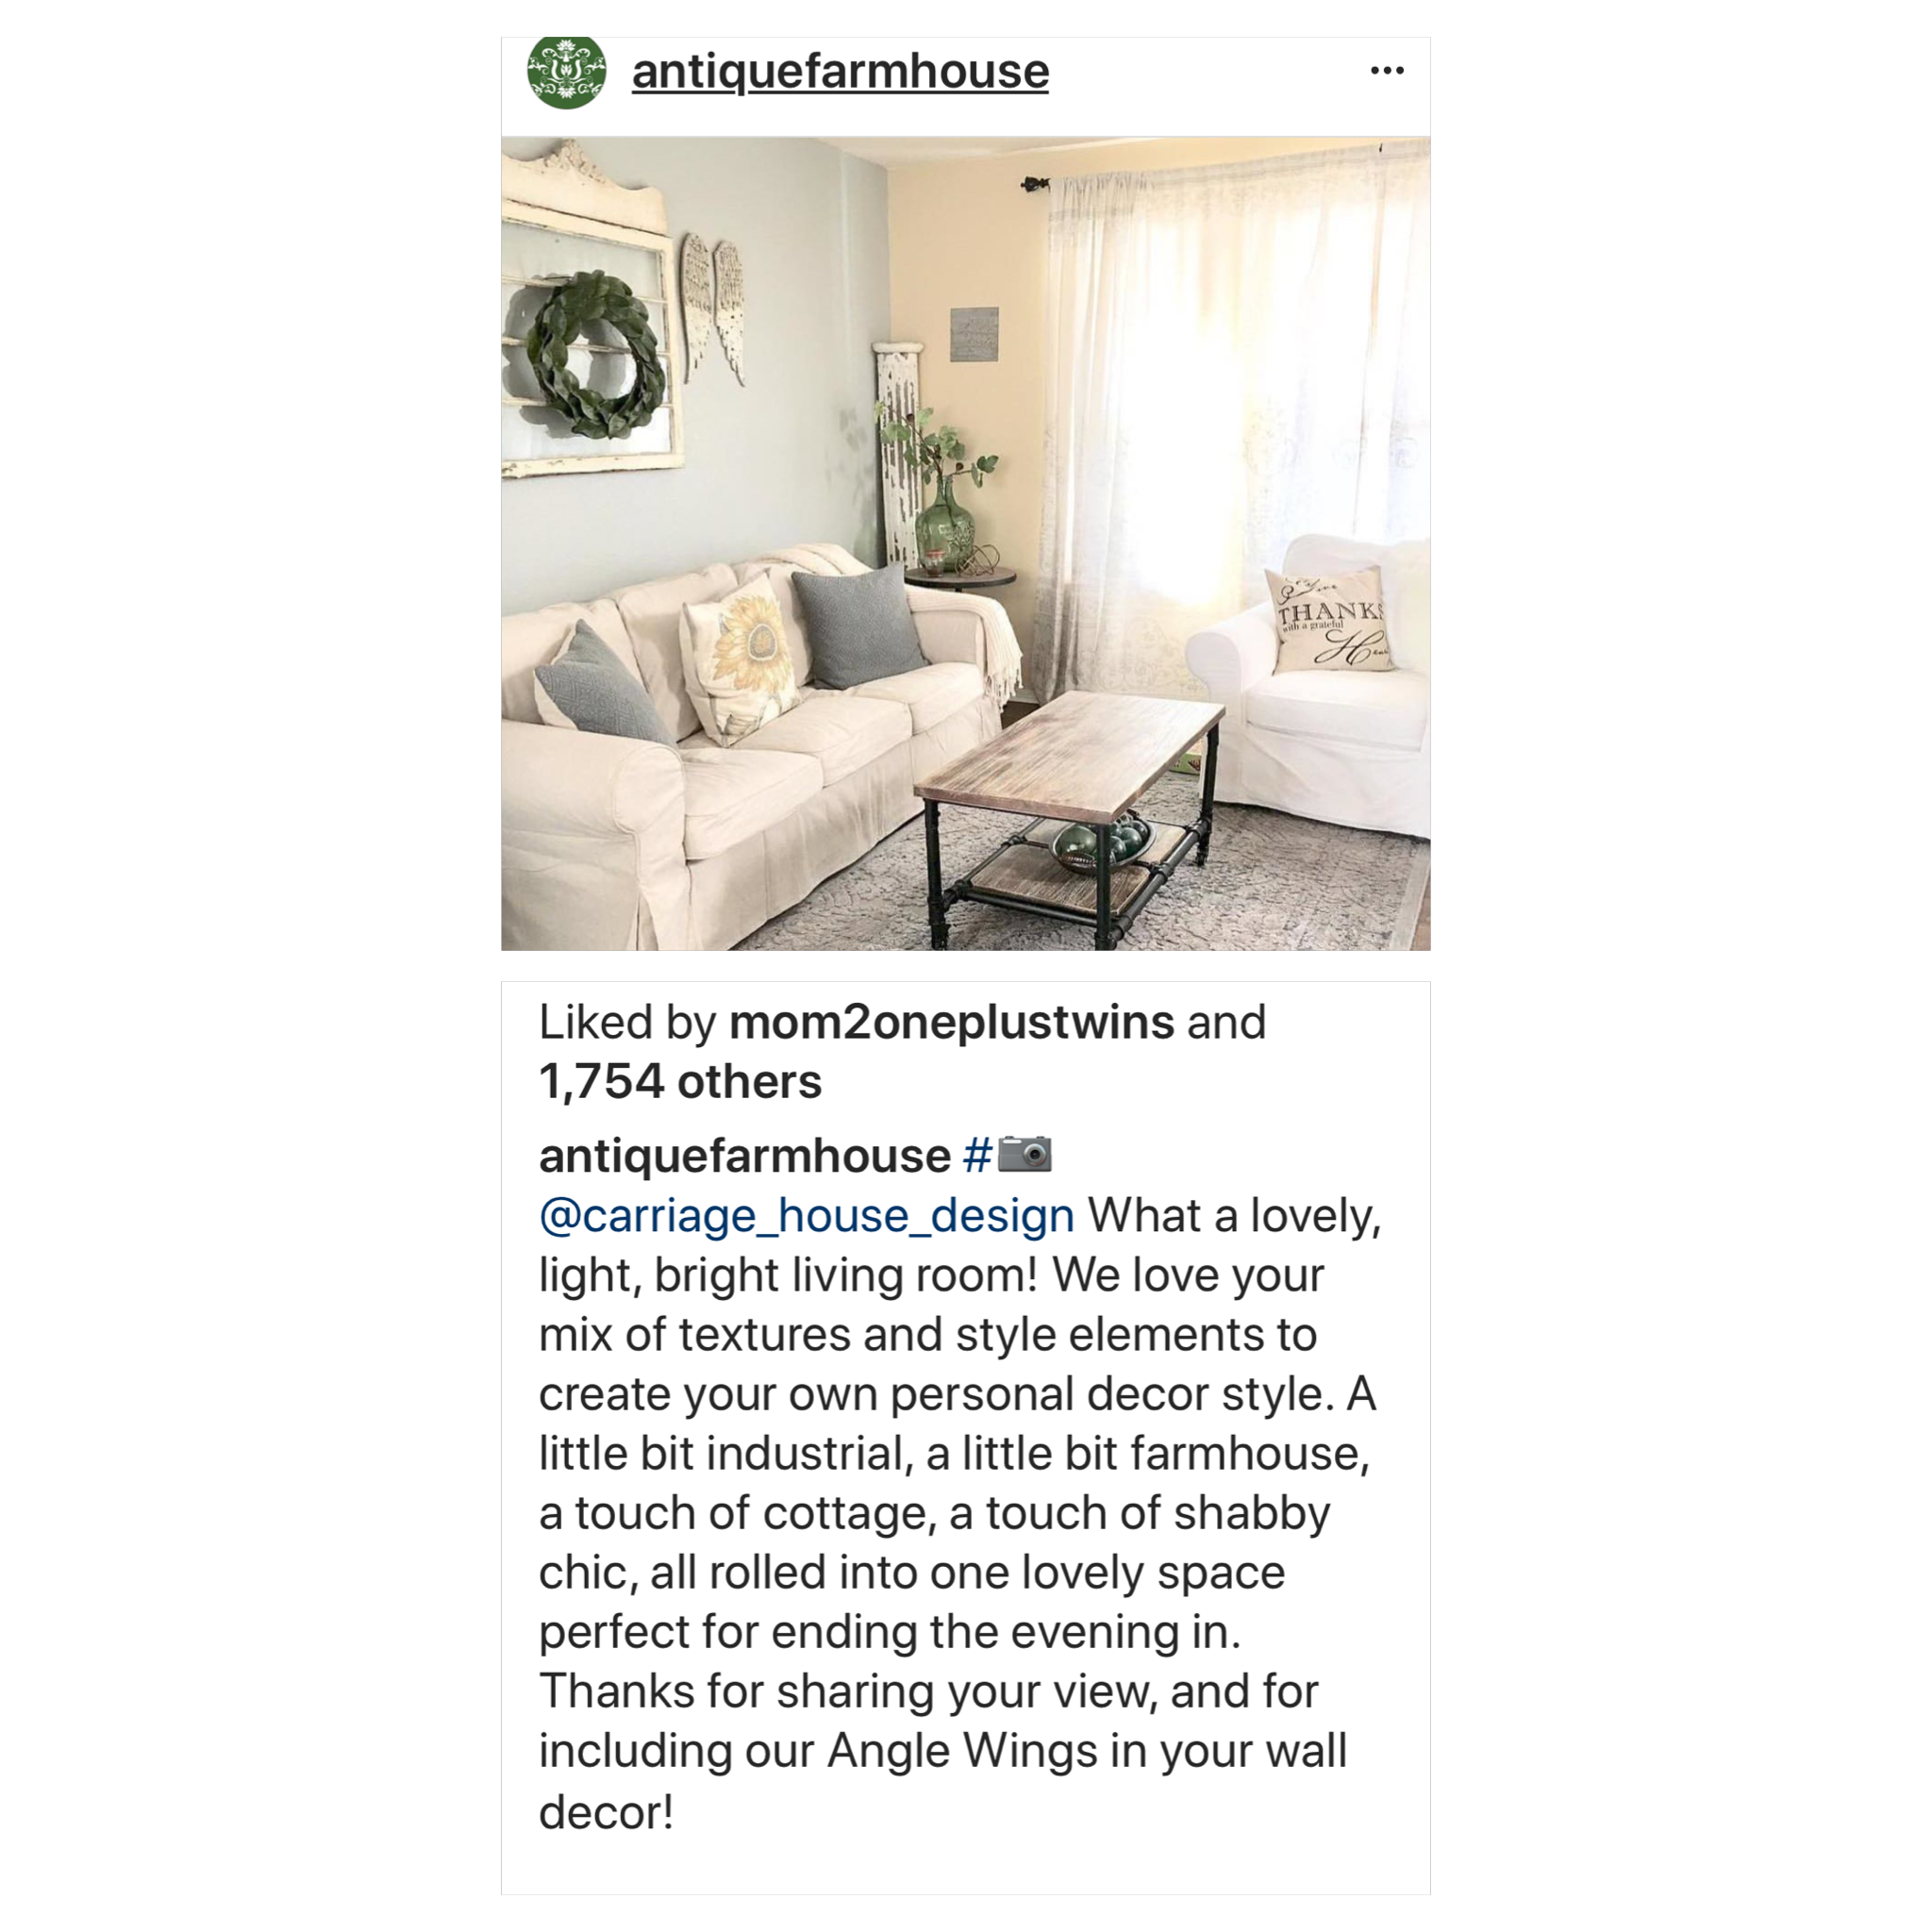 Carriage House Staging U0026 Design Featured On Antique Farmhouseu0027s IG Page